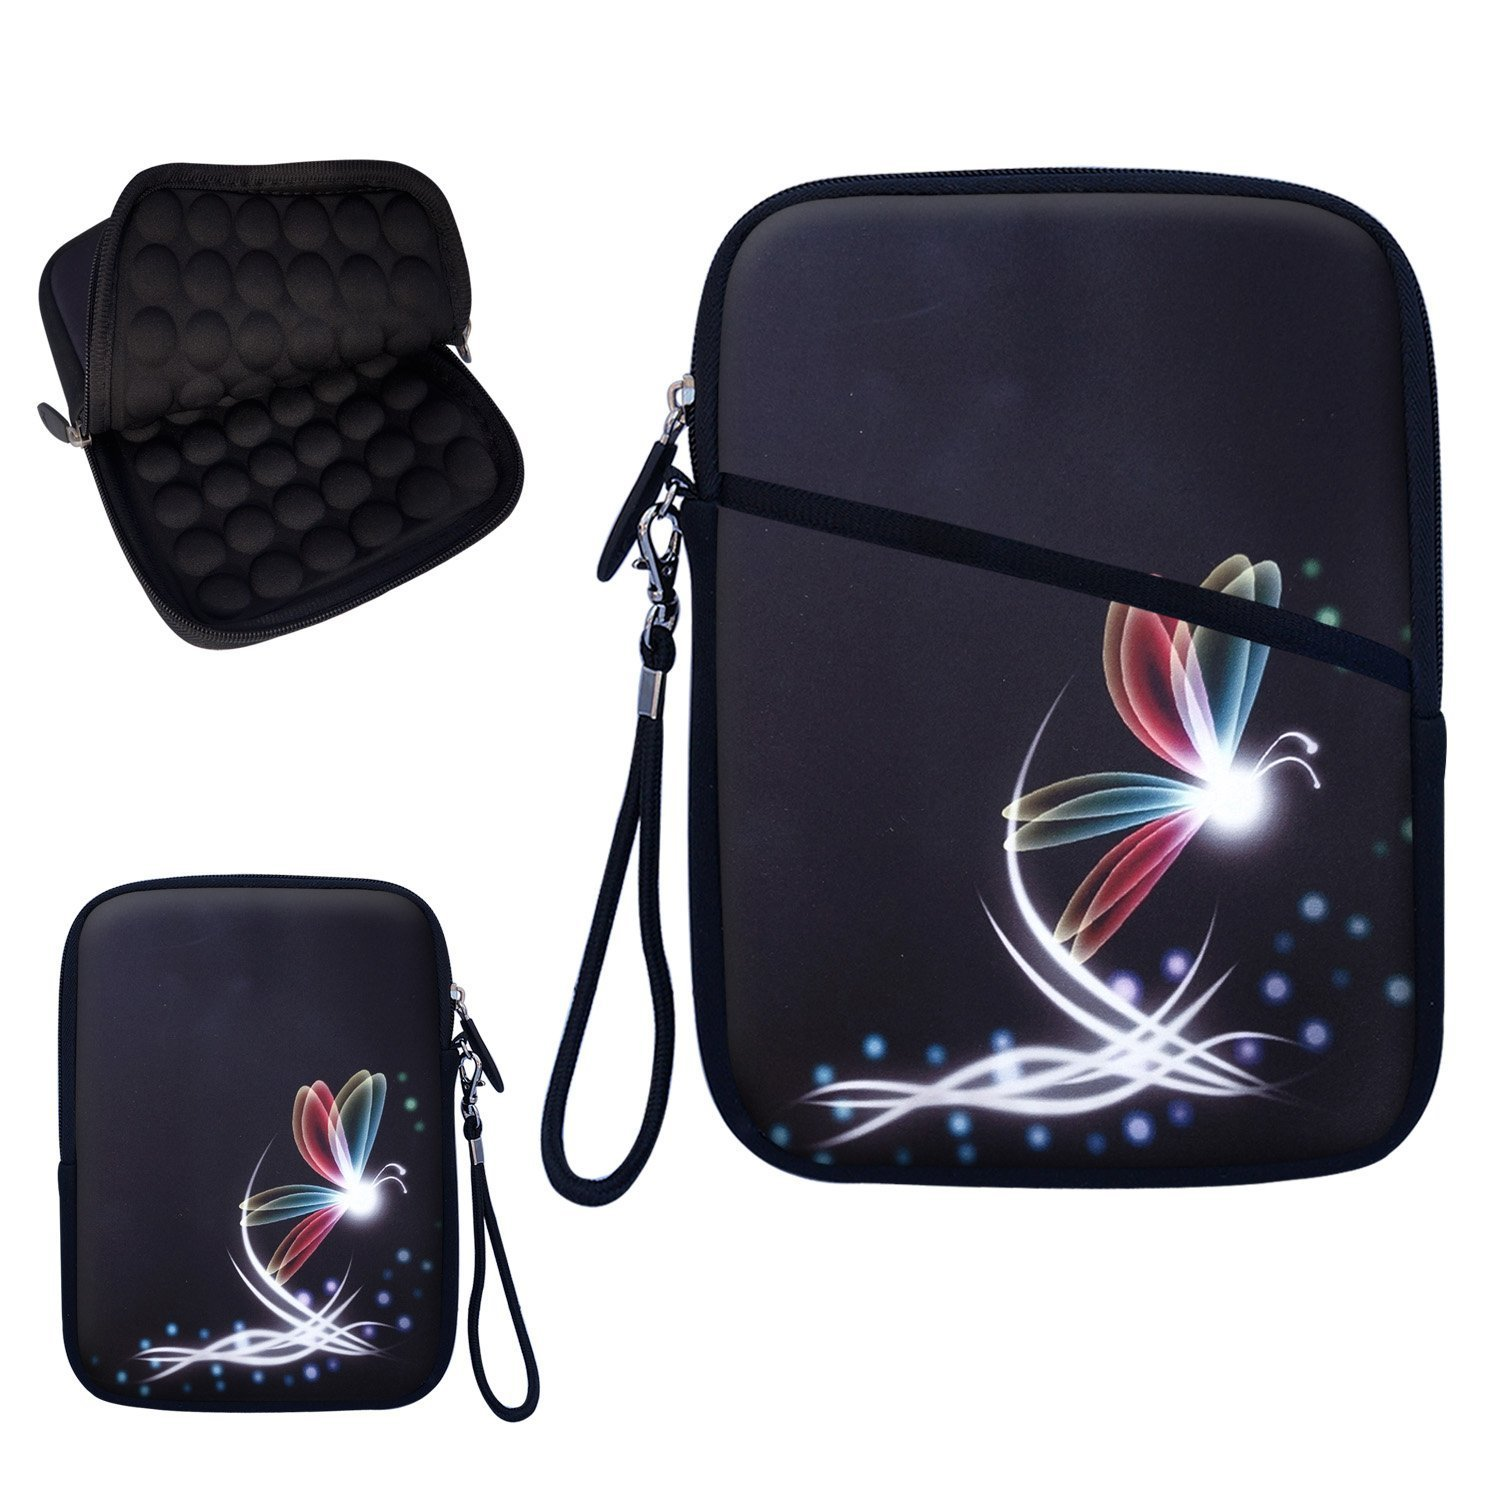 Neoprene Super Padded Bubble Sleeve Case Cover with Extra Pocket for Accessories & Removable Carrying Handle For Apple iPad Mini / Amazon Kindle Fire HD / Kindle 3 & Paperwhite / Nexus 7 / Samsung Galaxy Tab and Similar Size Tablet - Dark Butterfly Design